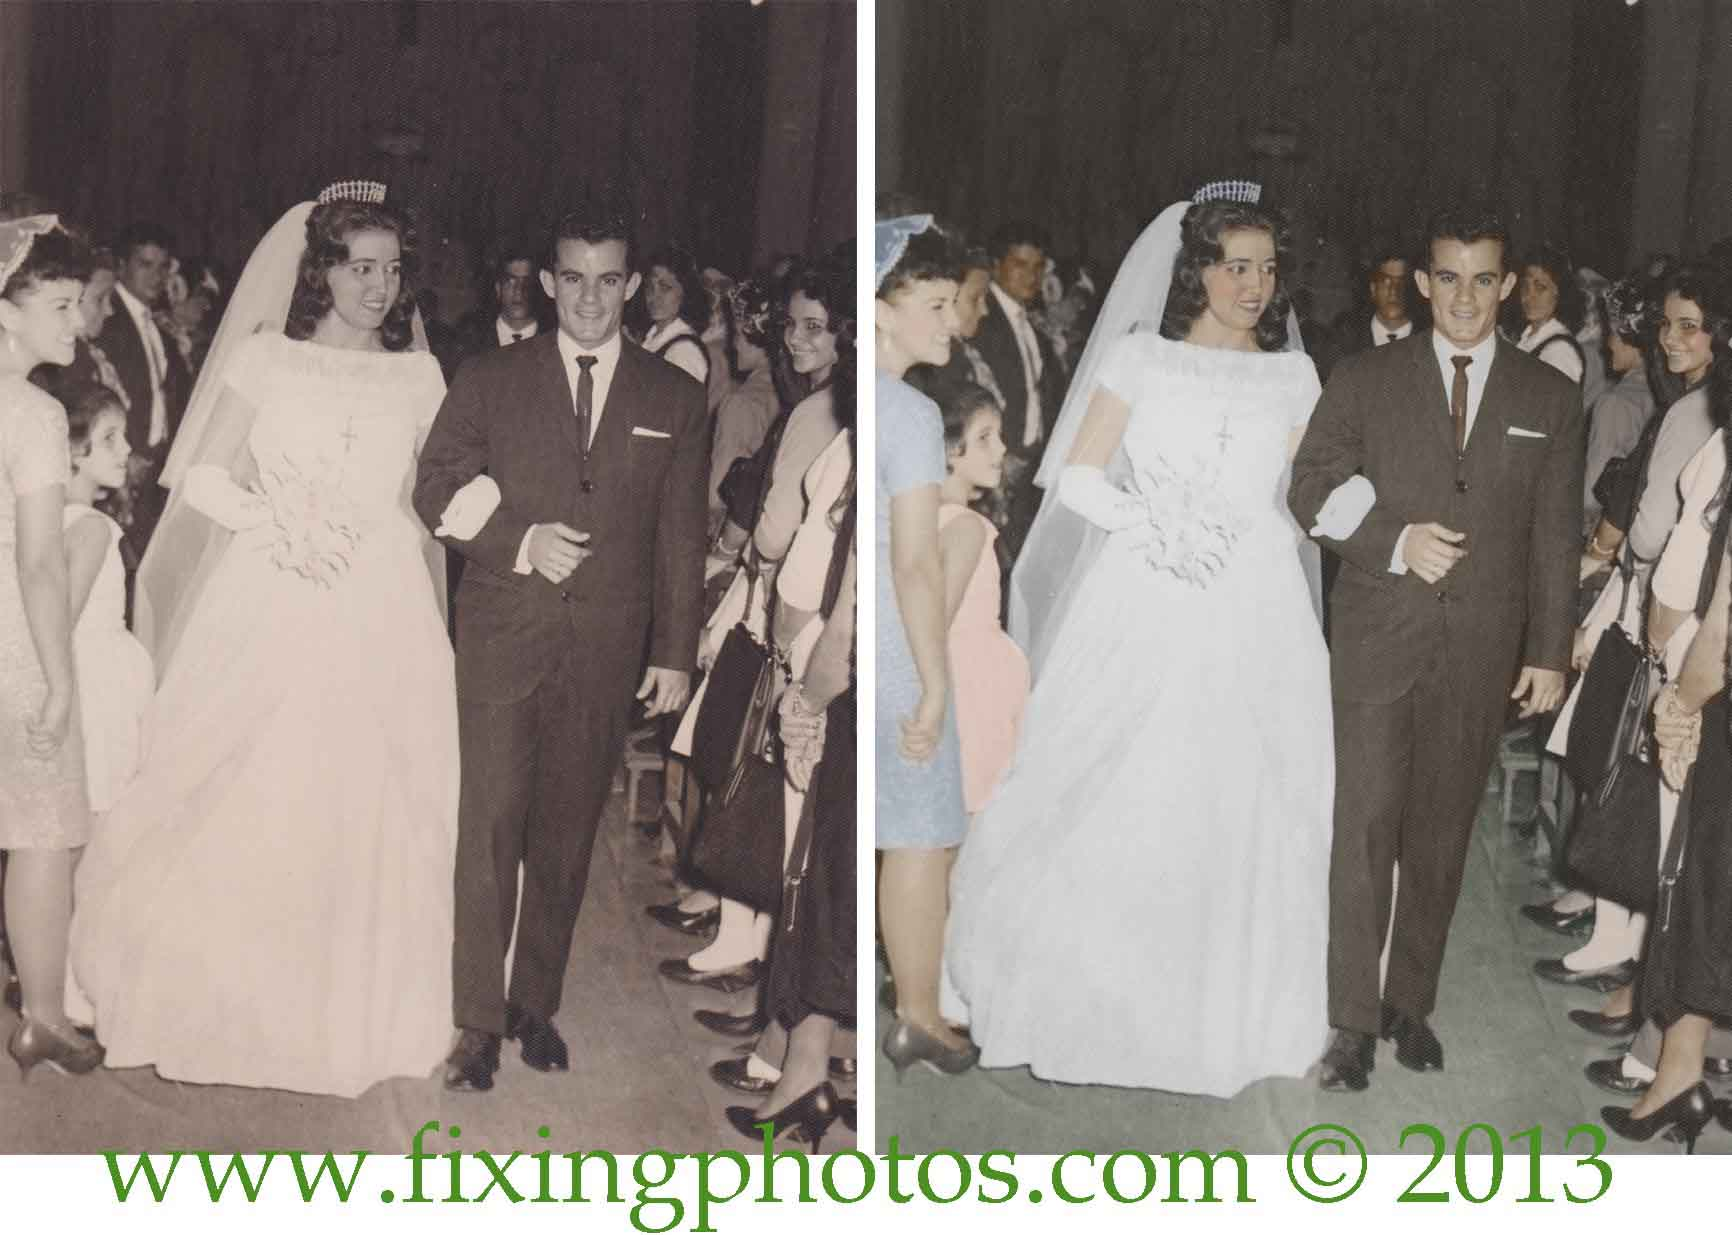 Photo Repair Services, Colorization, Color Corrections www.fixingphotos.com/ Photo Repair & Restoration Services Repairing Photos Is What We Do Best